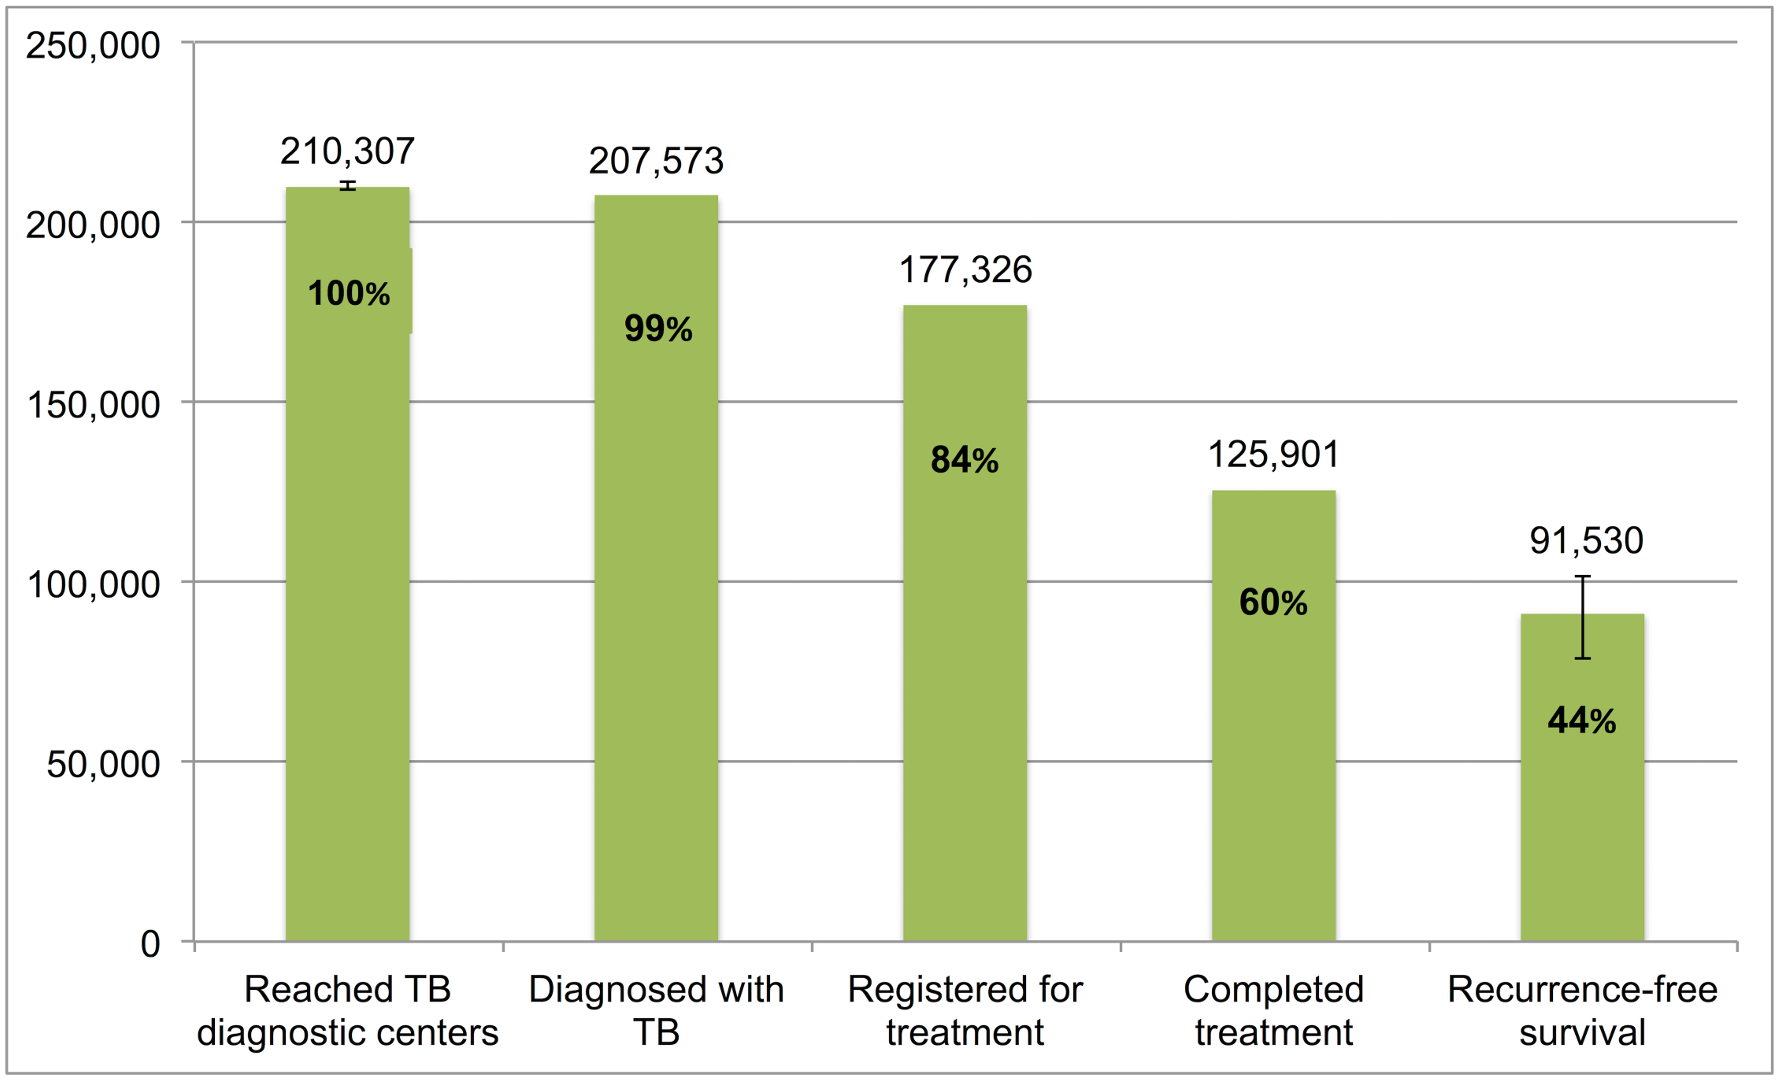 The tuberculosis cascade of care for retreatment smear-positive tuberculosis patients detected and treated by the Revised National Tuberculosis Control Programme (RNTCP) in India, 2013.